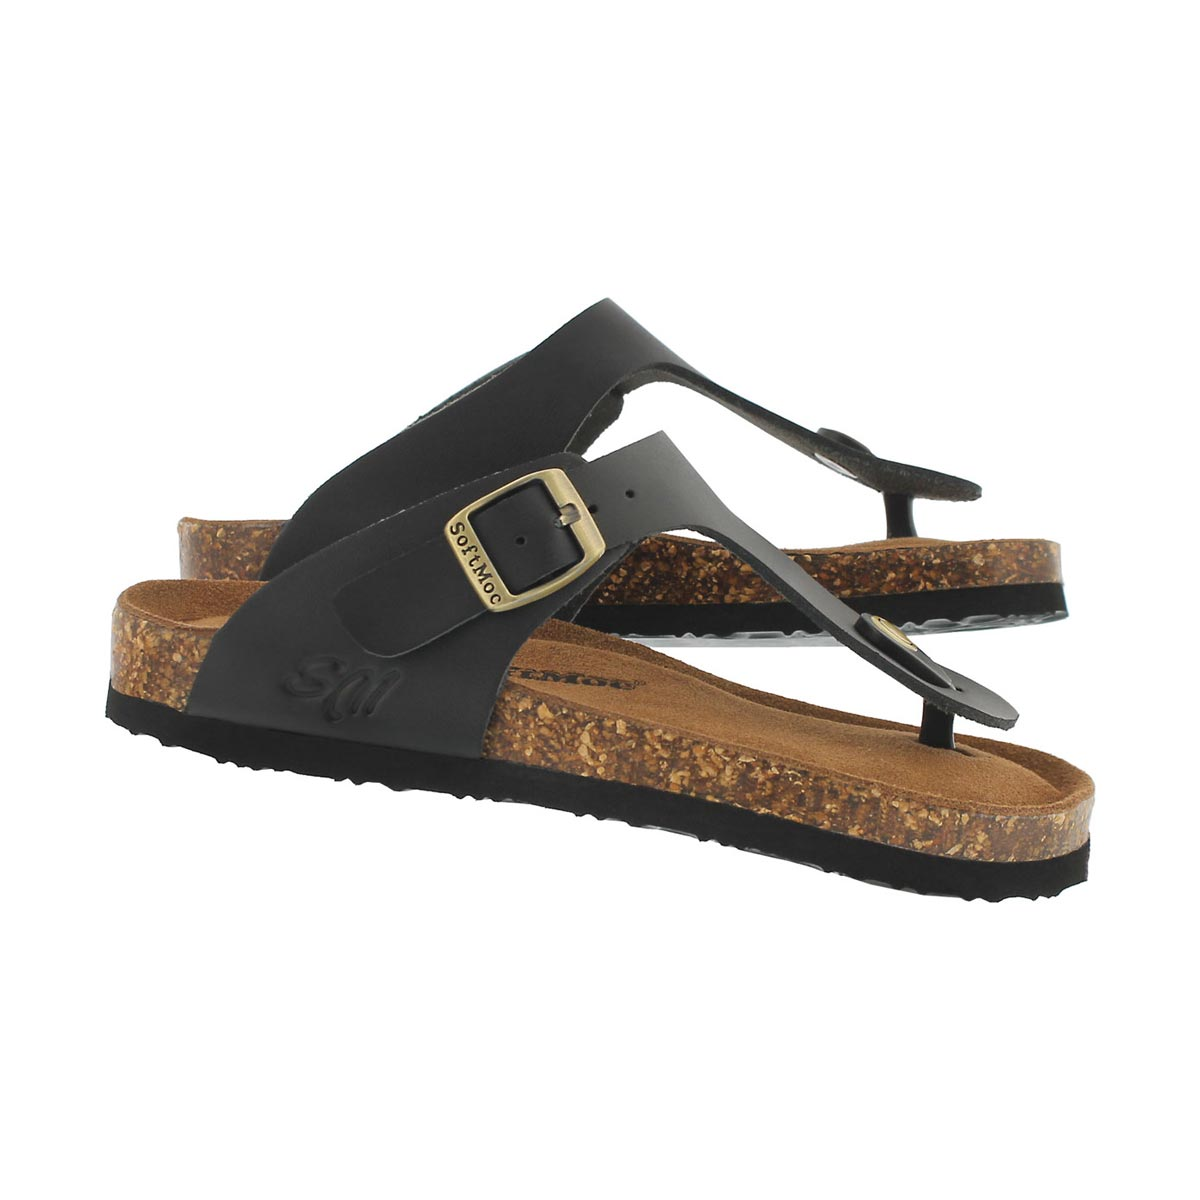 Grls Angy 5 blk memory foam thng sandal